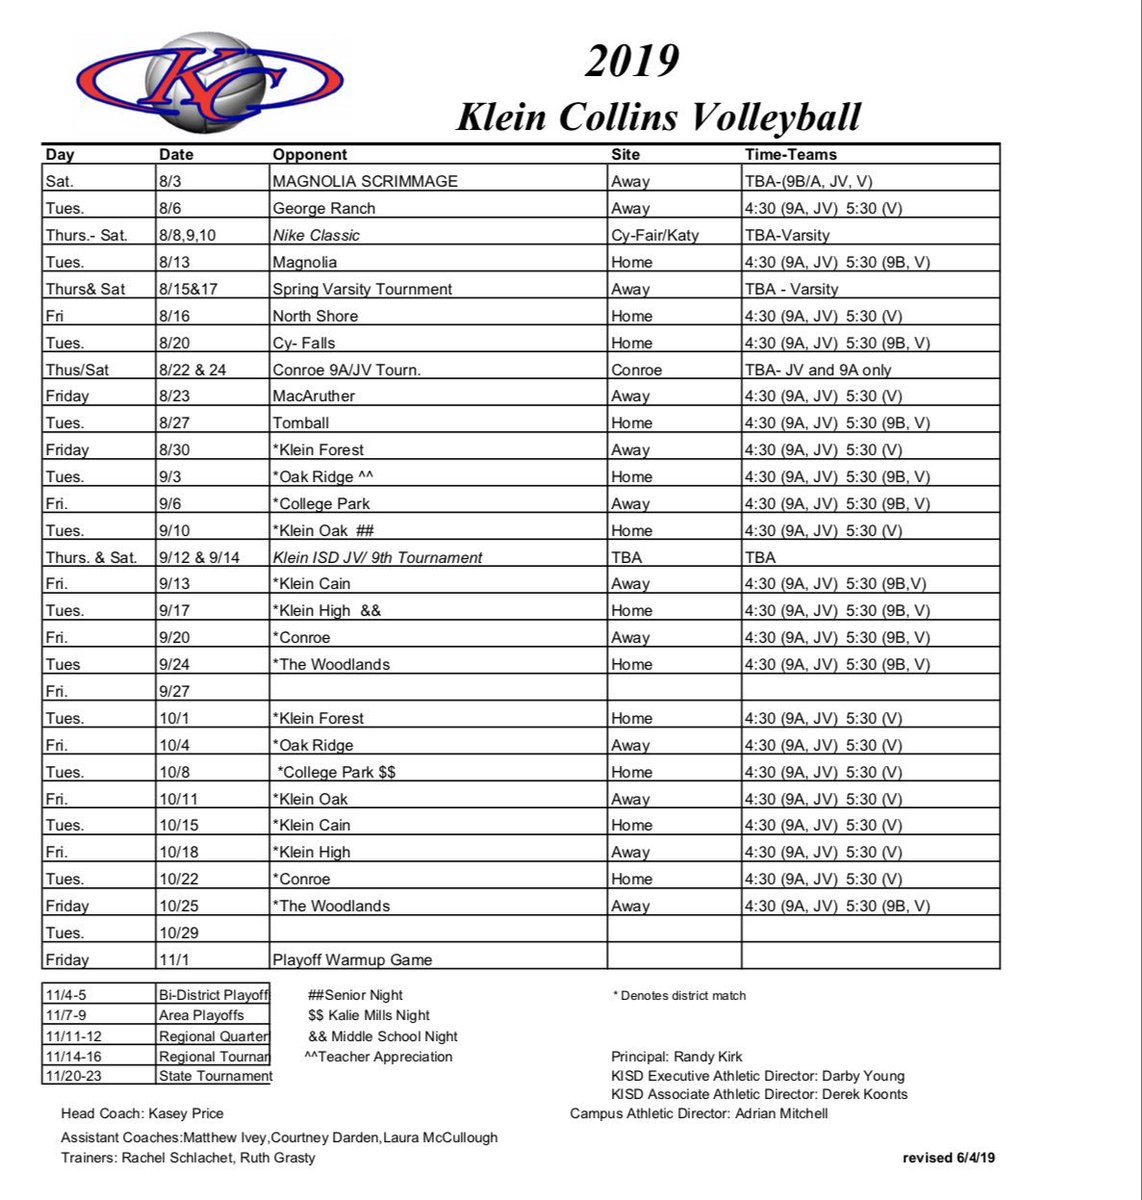 Here's our upcoming fall schedule!! We would love to see you there, thank you for all of your support.  #TigersTakeover #KCVB <br>http://pic.twitter.com/nJPdBdaTYb